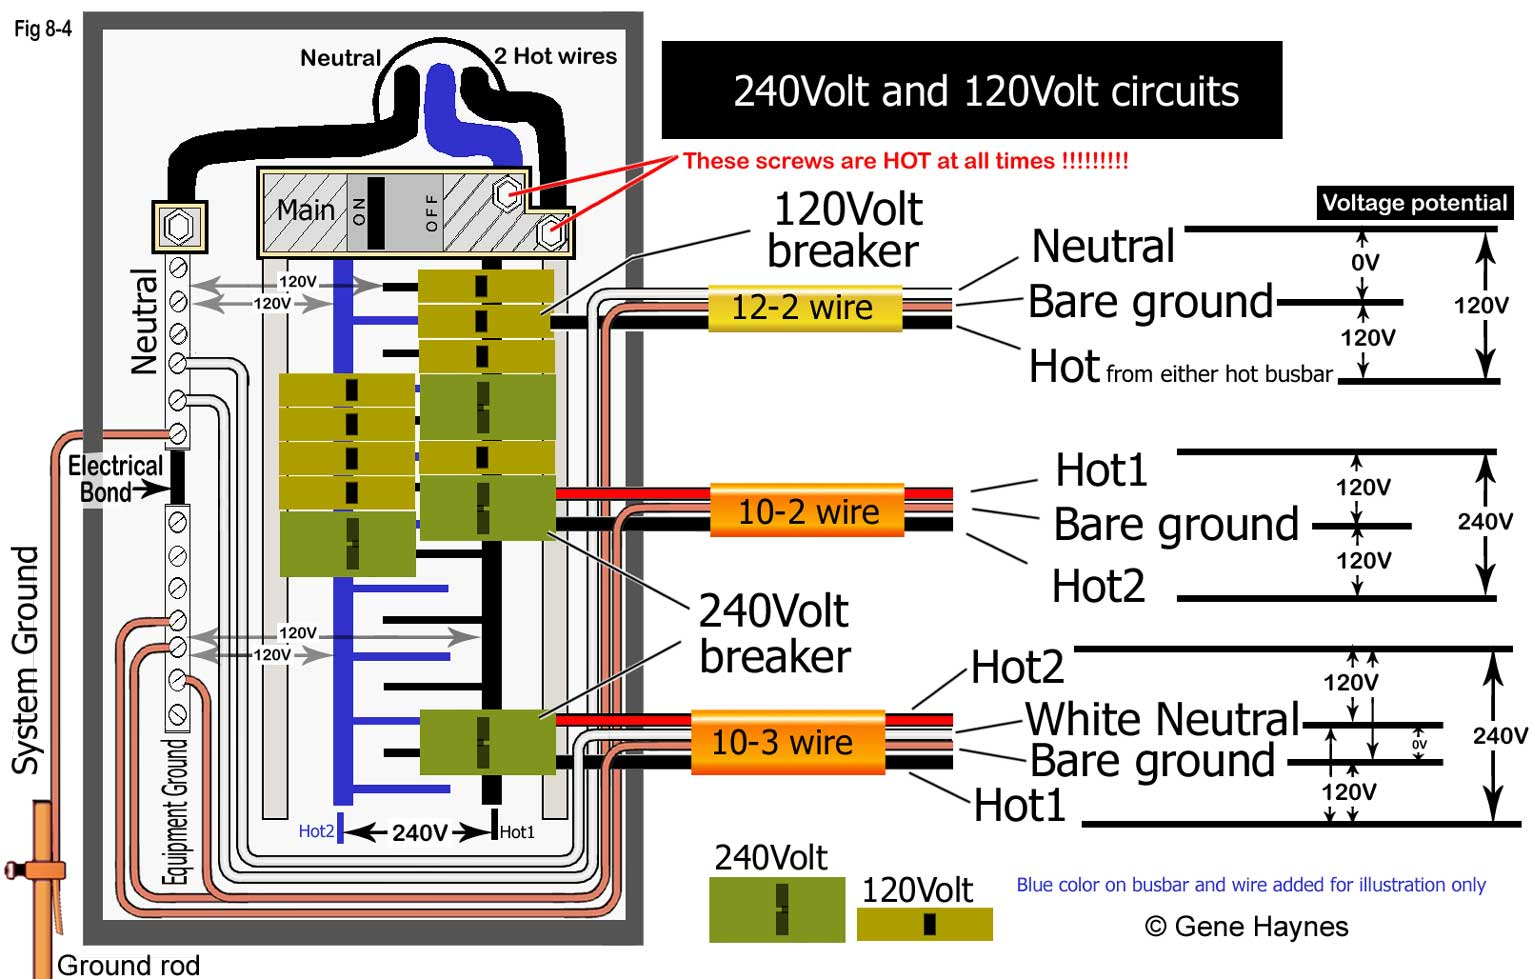 hight resolution of some countries have 230 240volt circuits with 1 hot and 1 neutral instead of 2 hot wires unknown if ca3750 works with this power source